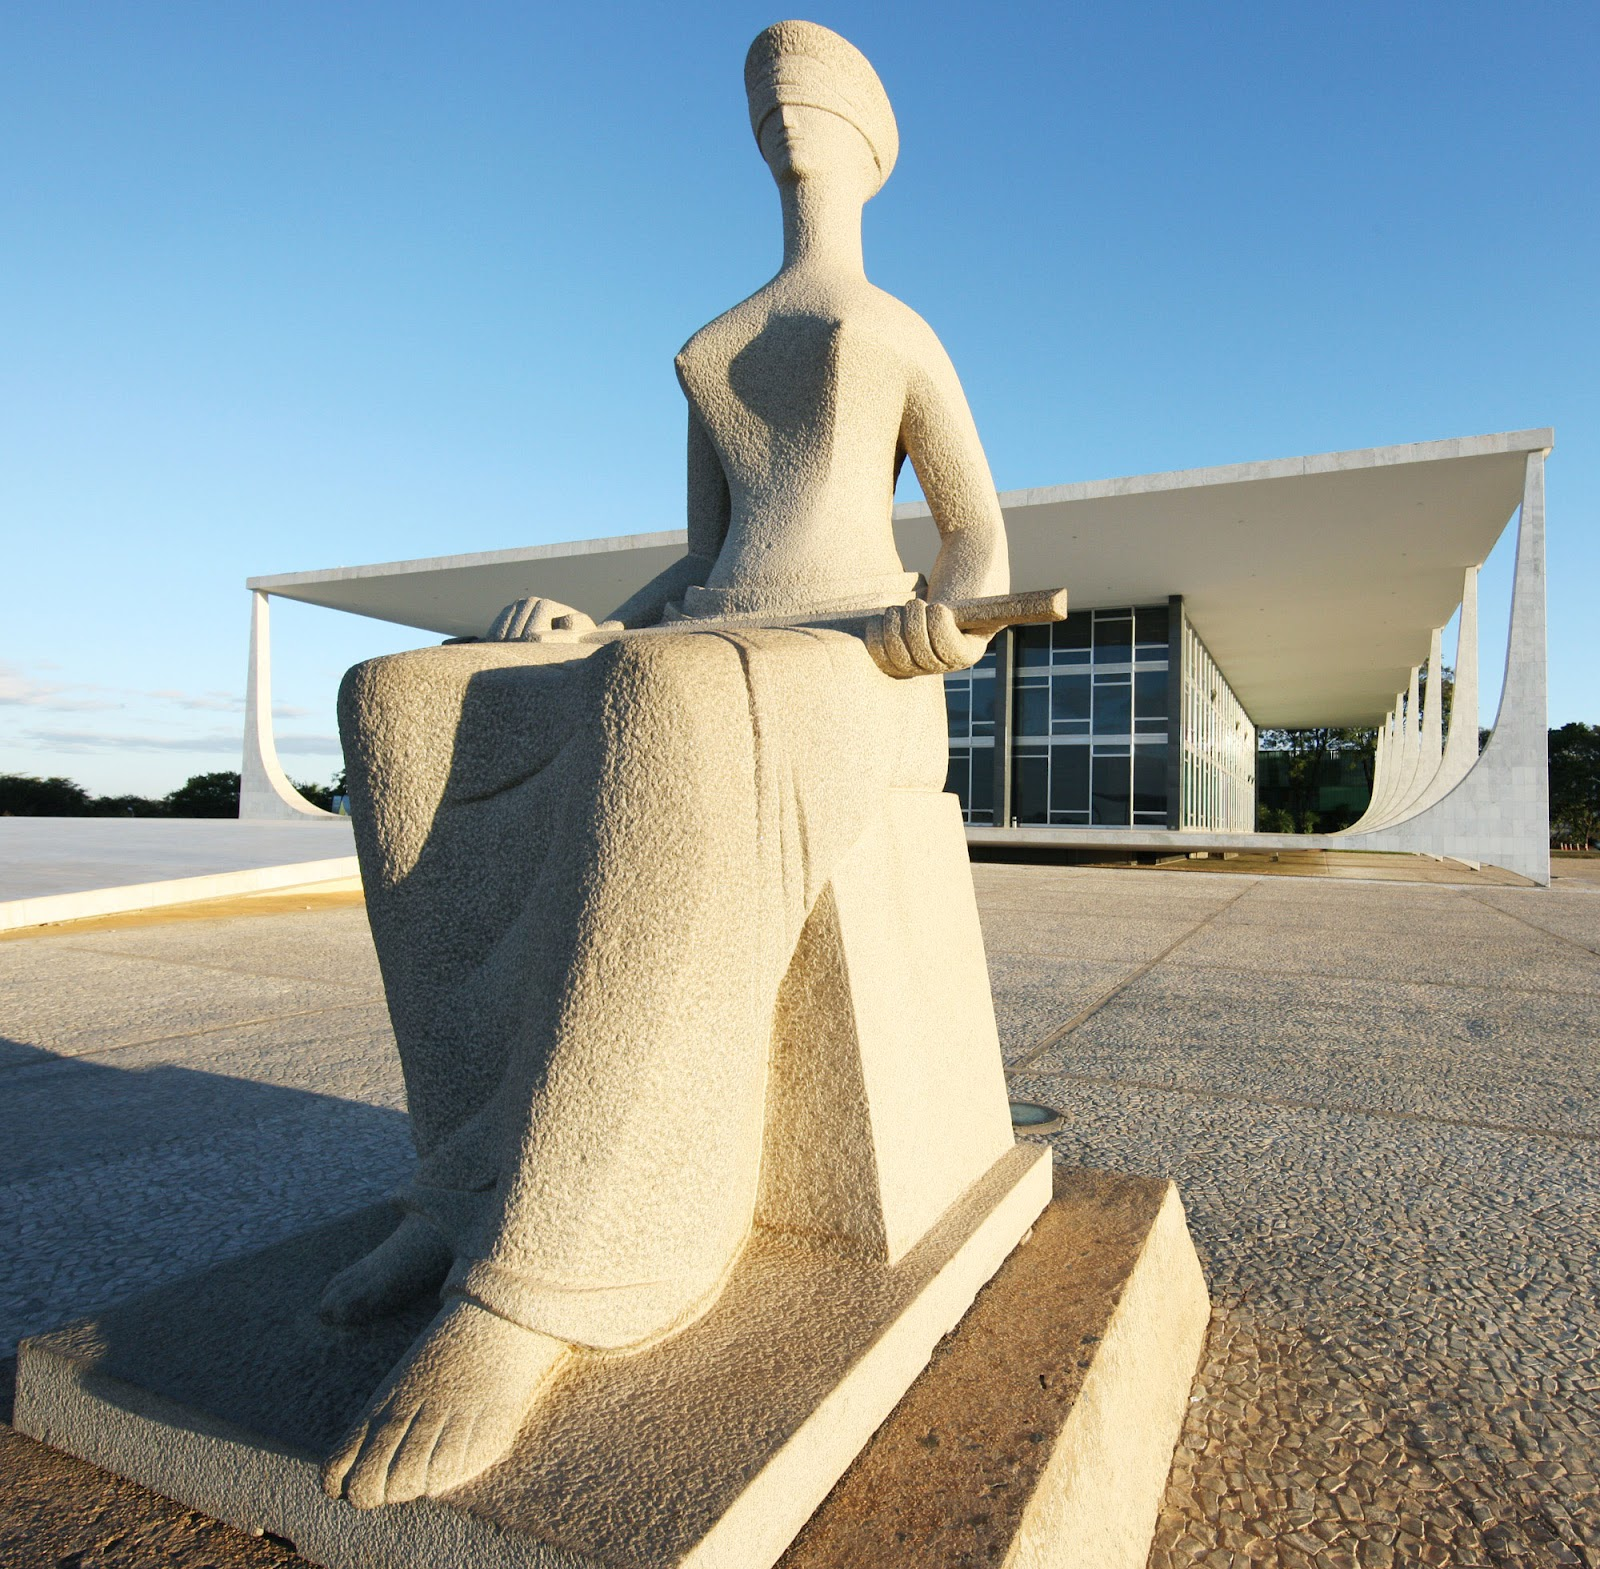 Supremo Tribunal Federal Brasília